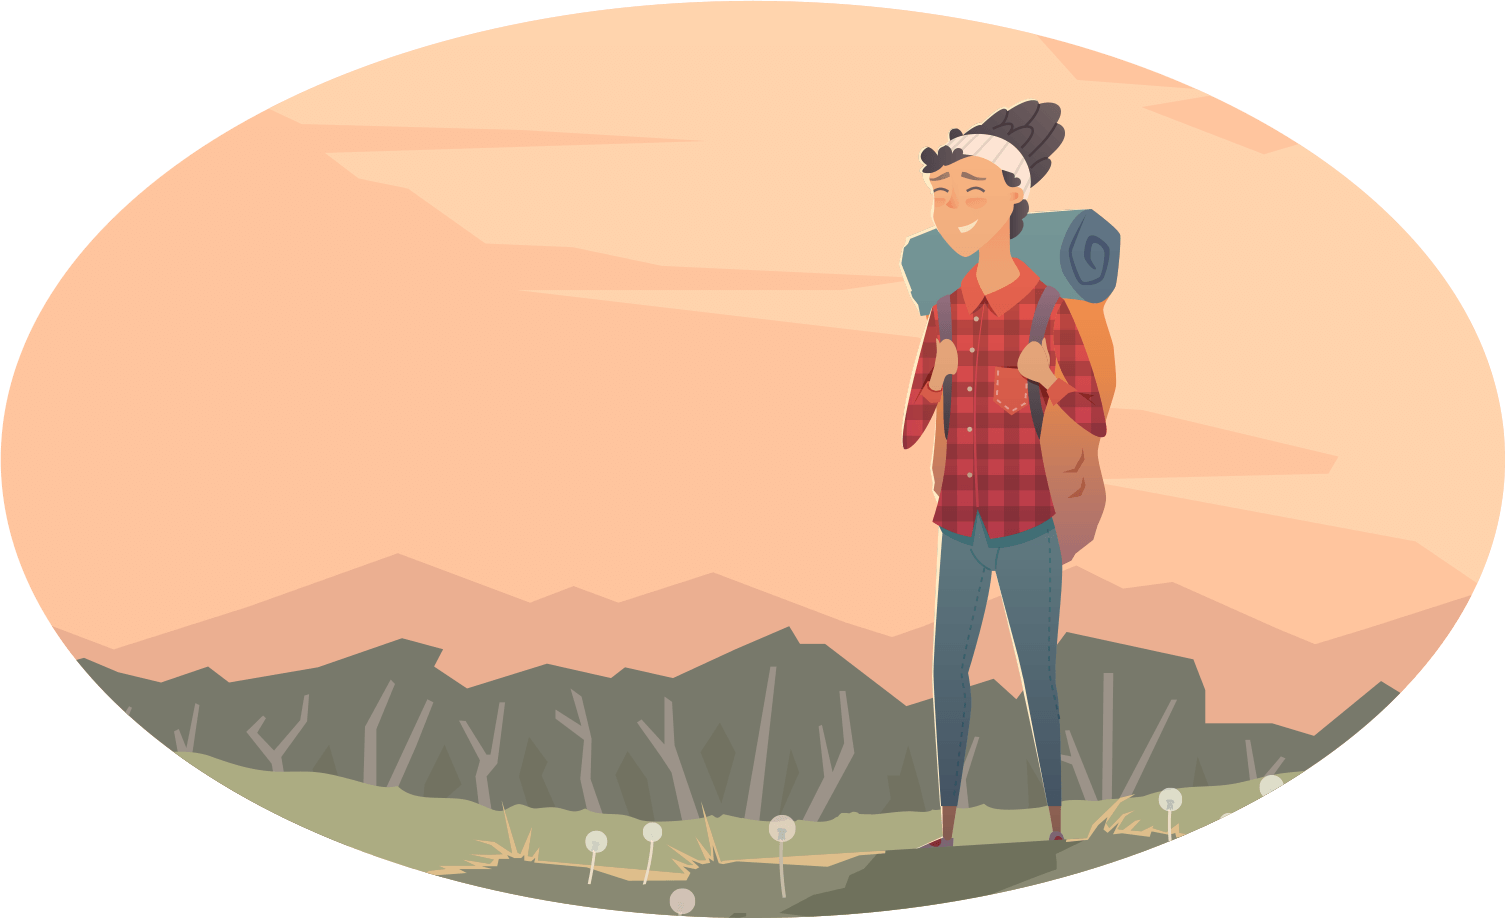 vector of woman smiling, surrounded by nature